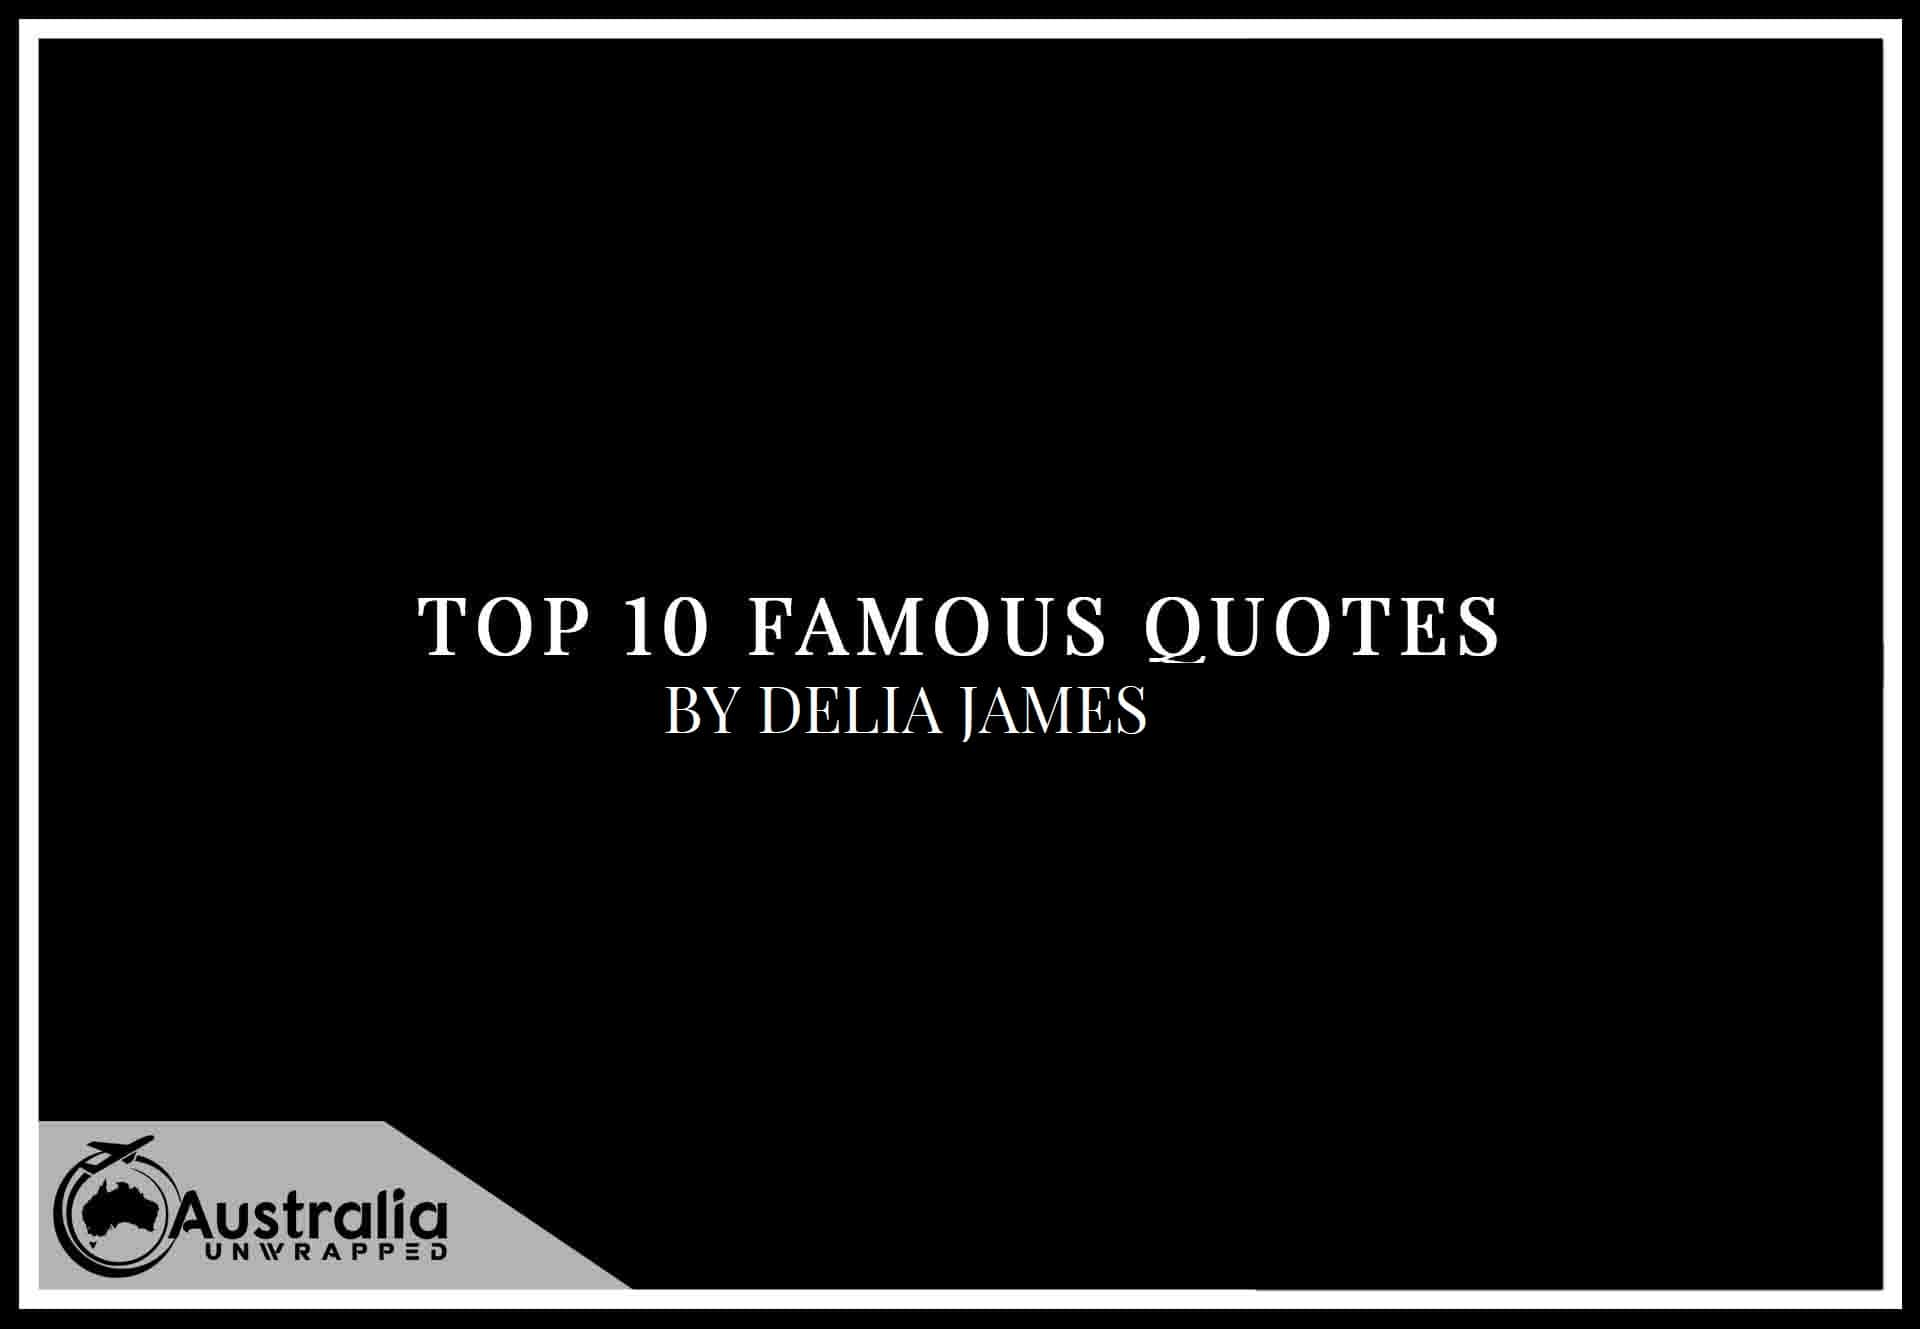 Top 10 Famous Quotes by Author Delia James